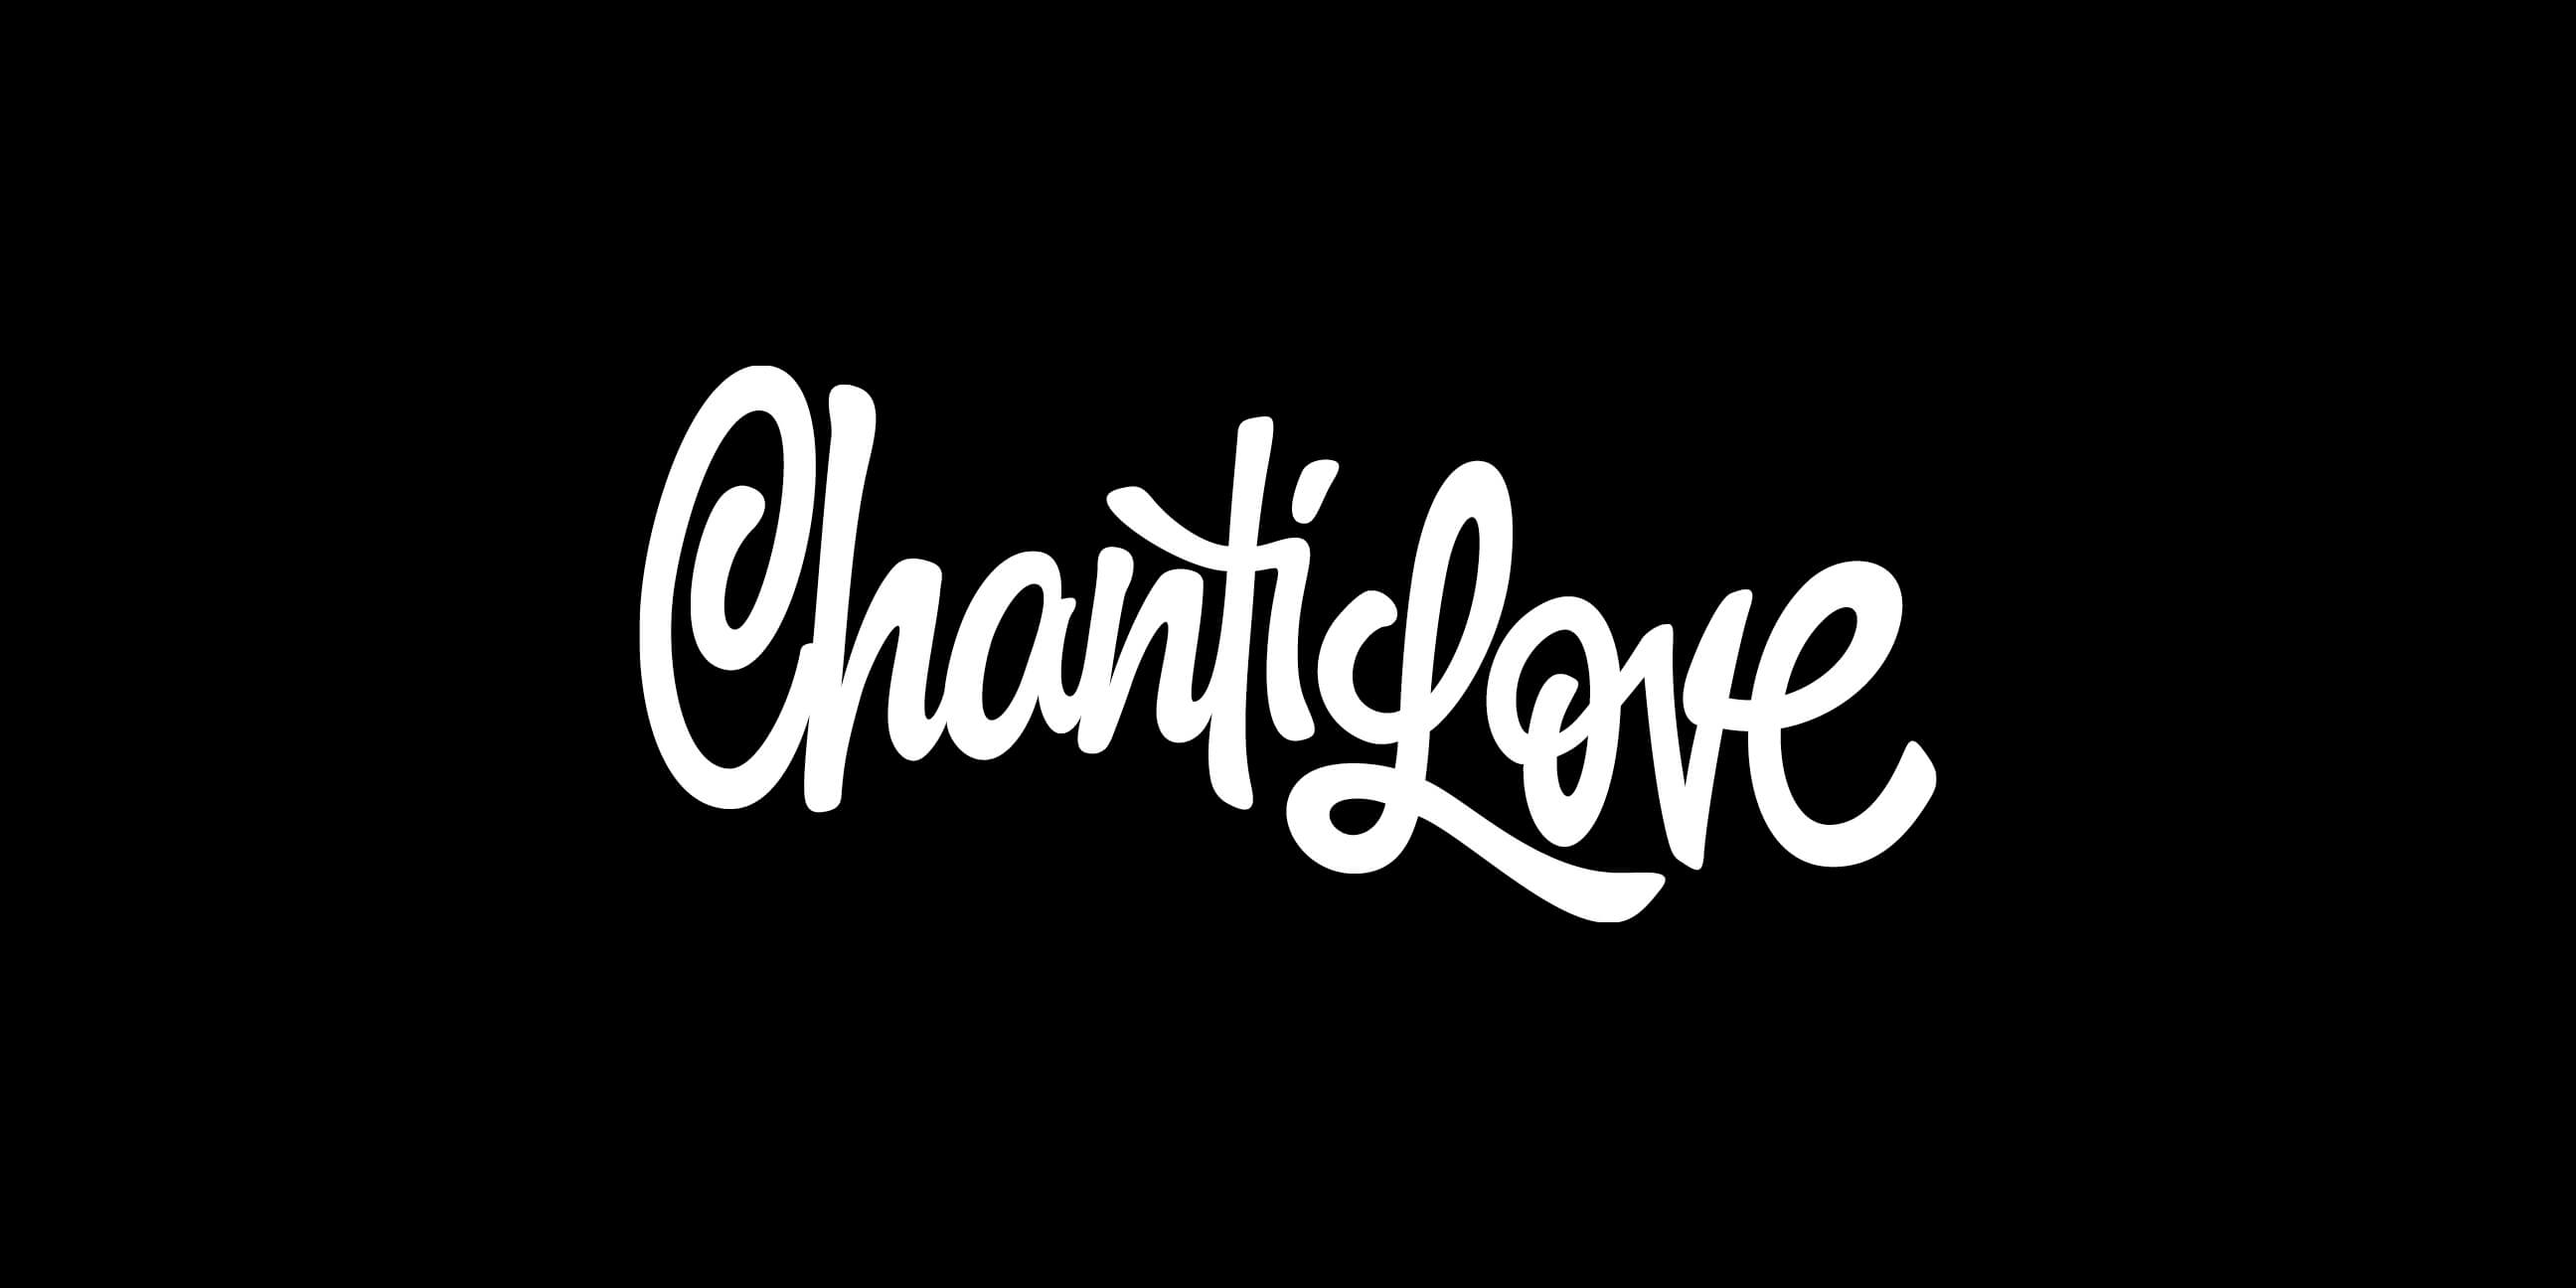 logo chanti love